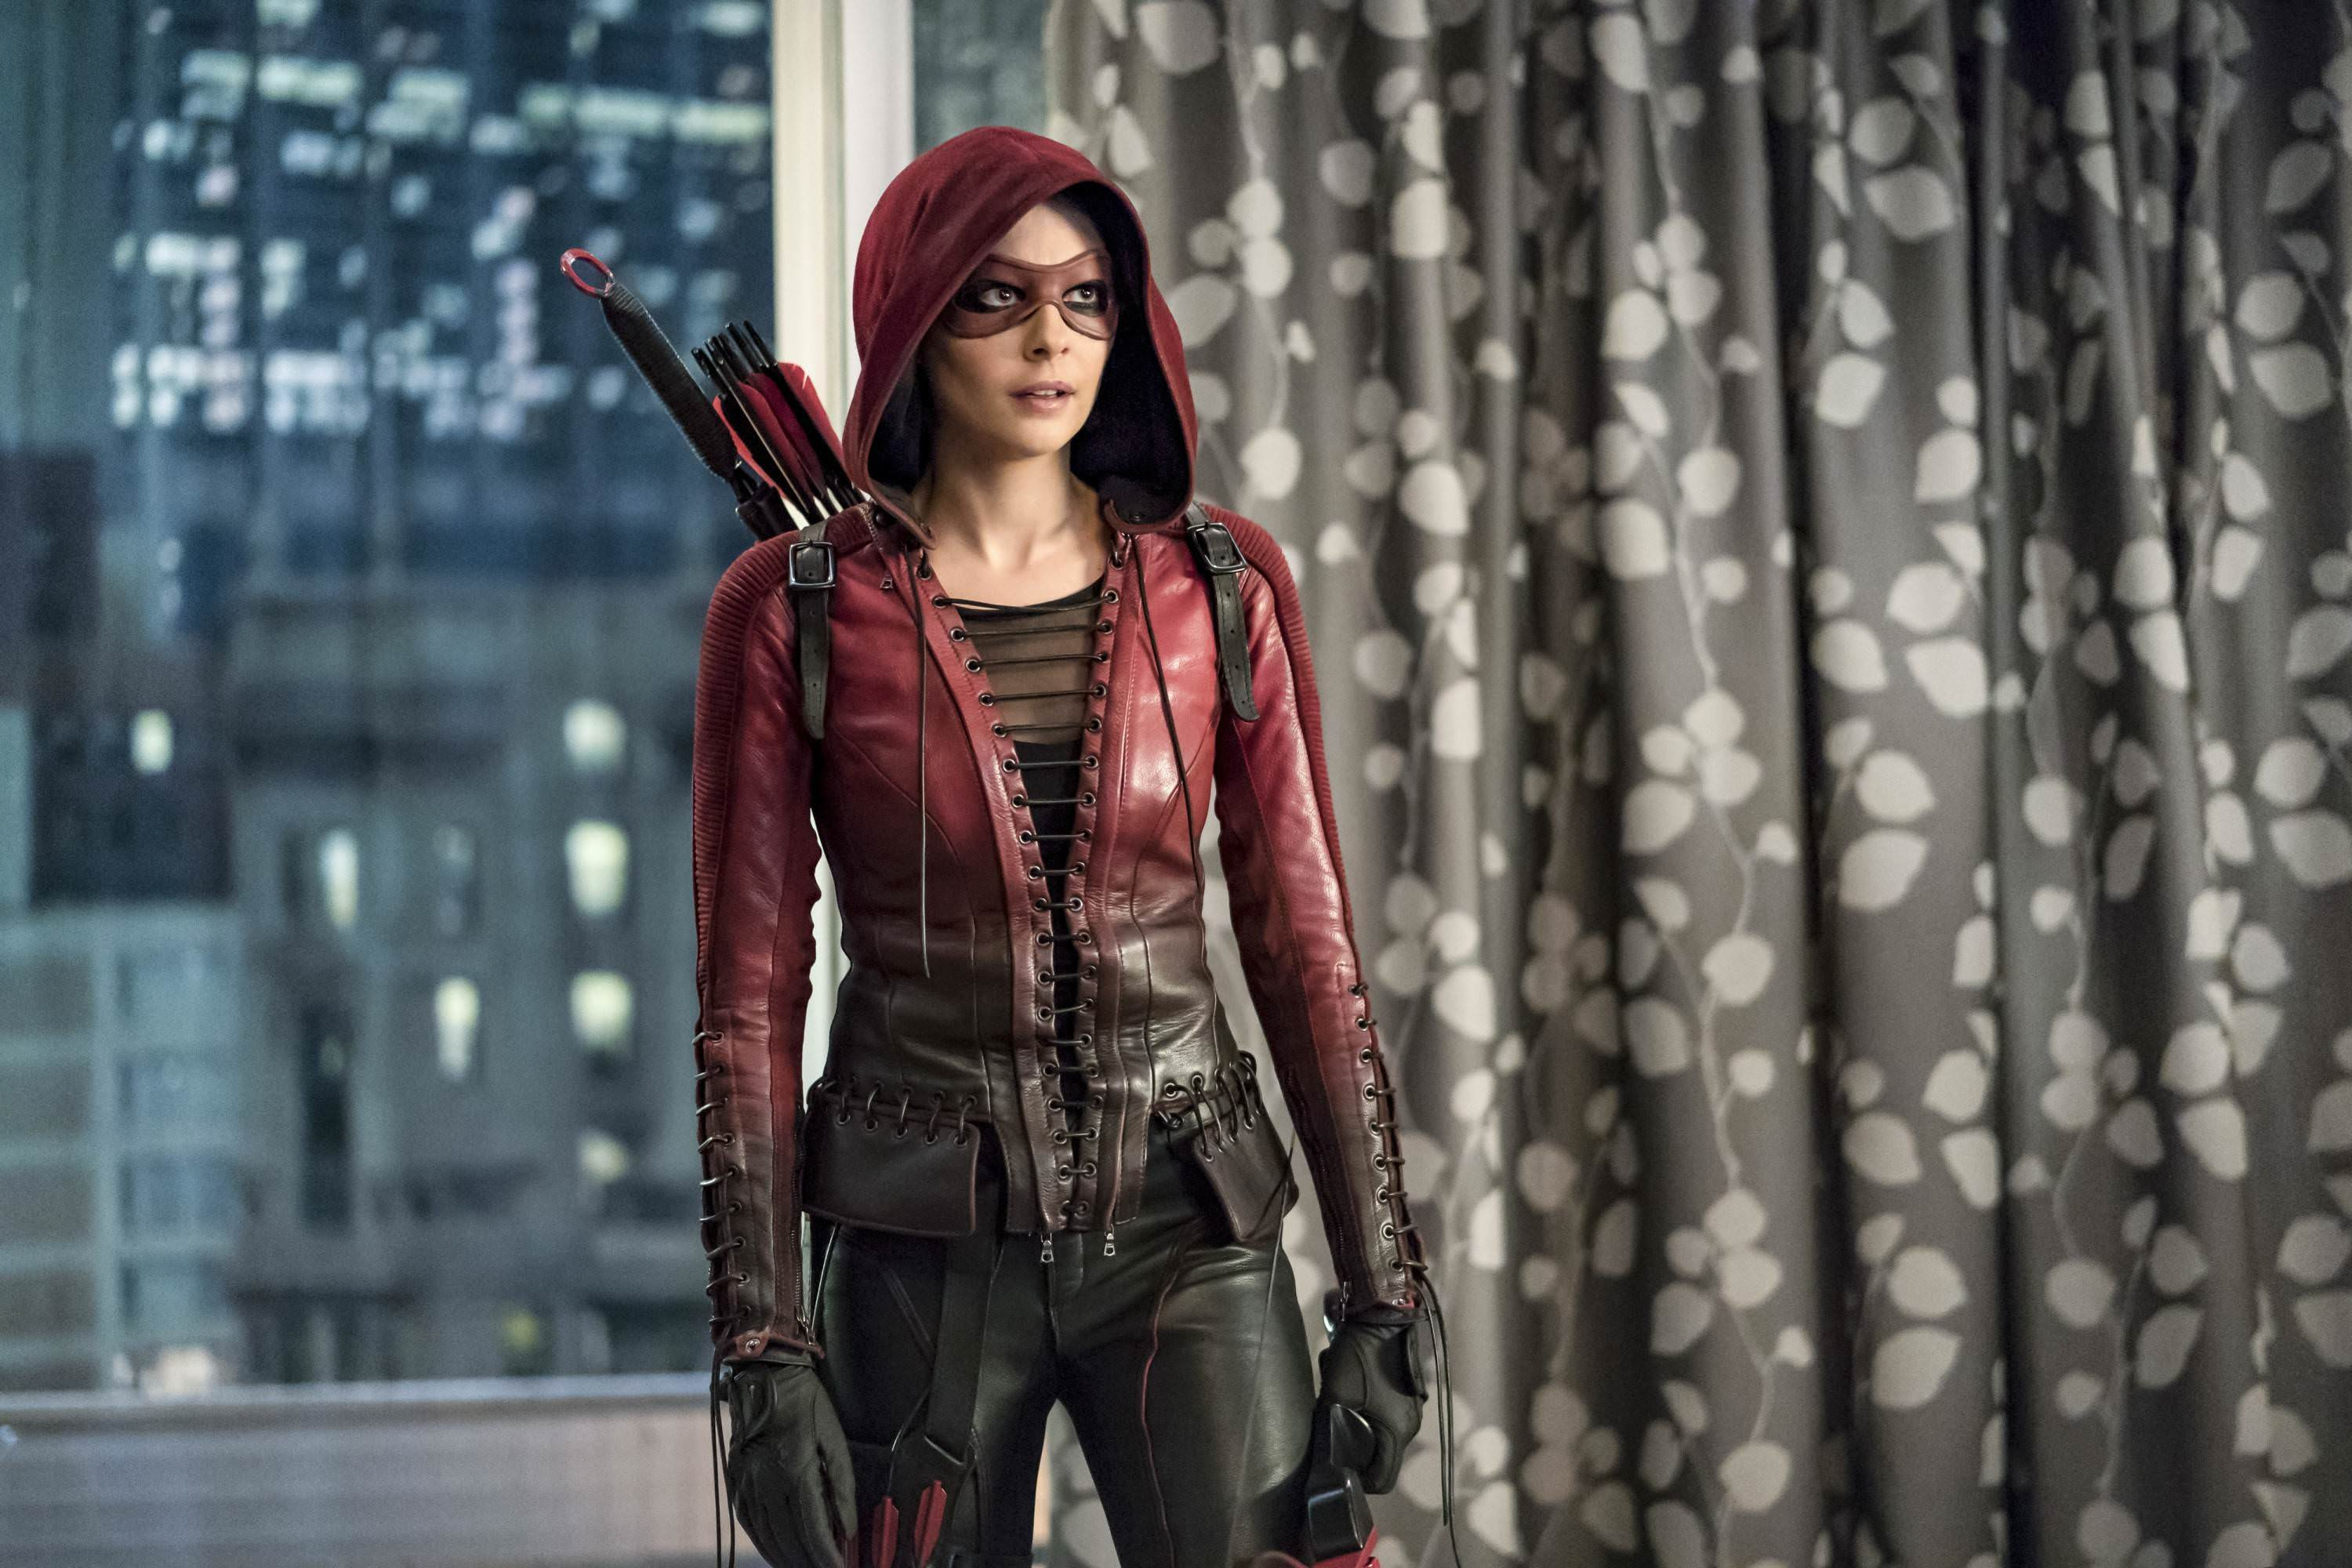 willa holland as thea queen in arrow tv series hd tv shows 4k